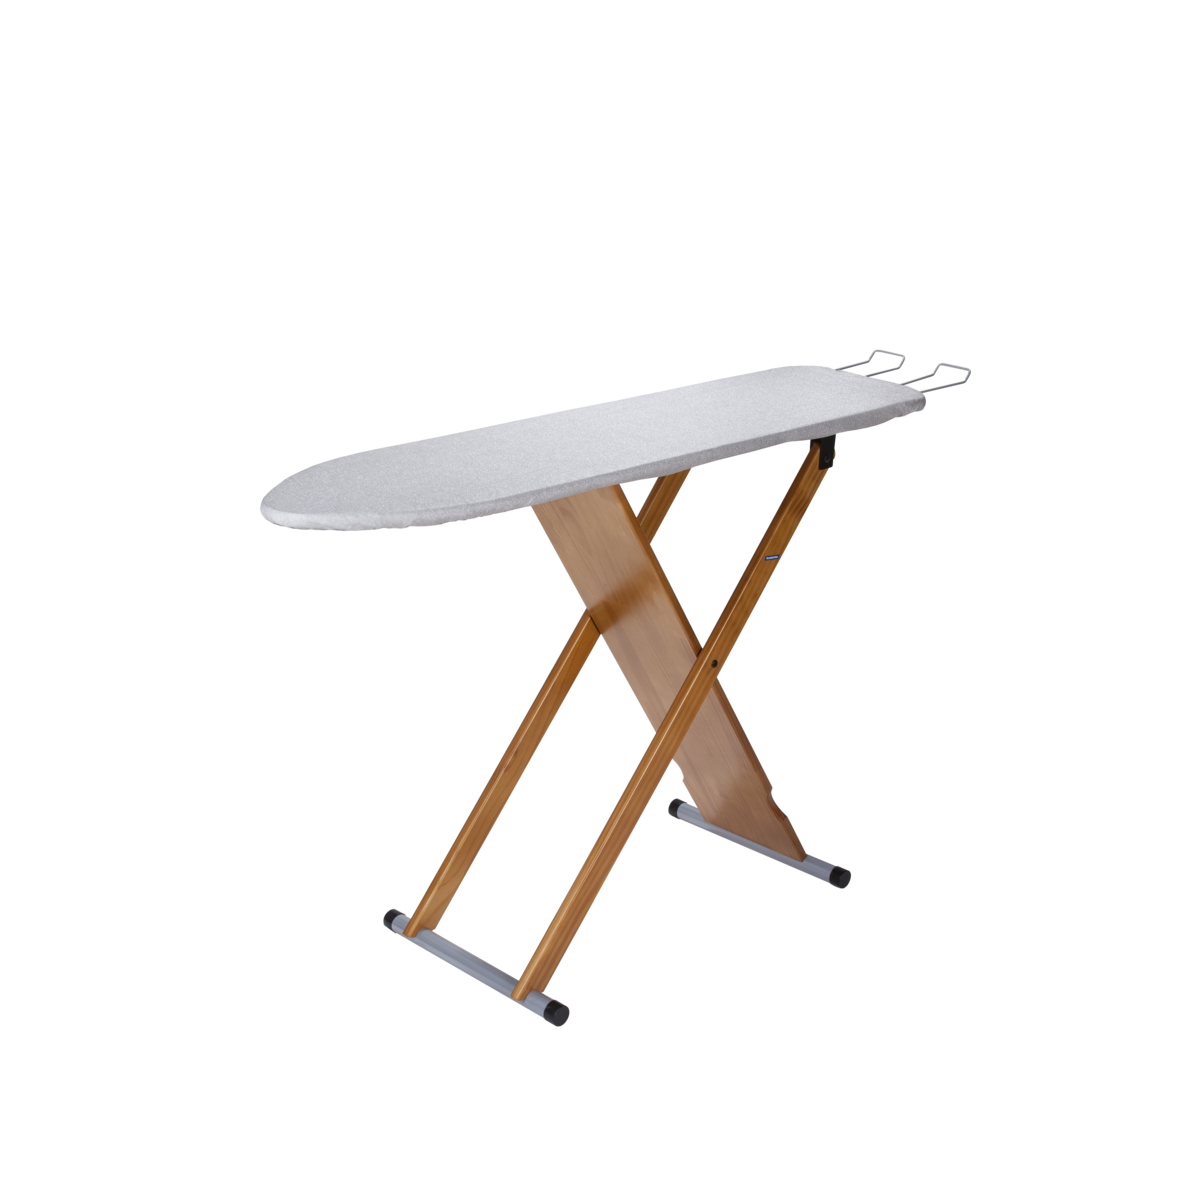 Tramontina Top Wood Frame Ironing Board With Varnish Finish Heat Resistant Cover Iron Rest And Epoxy Painted Metal Accessories Tramontina